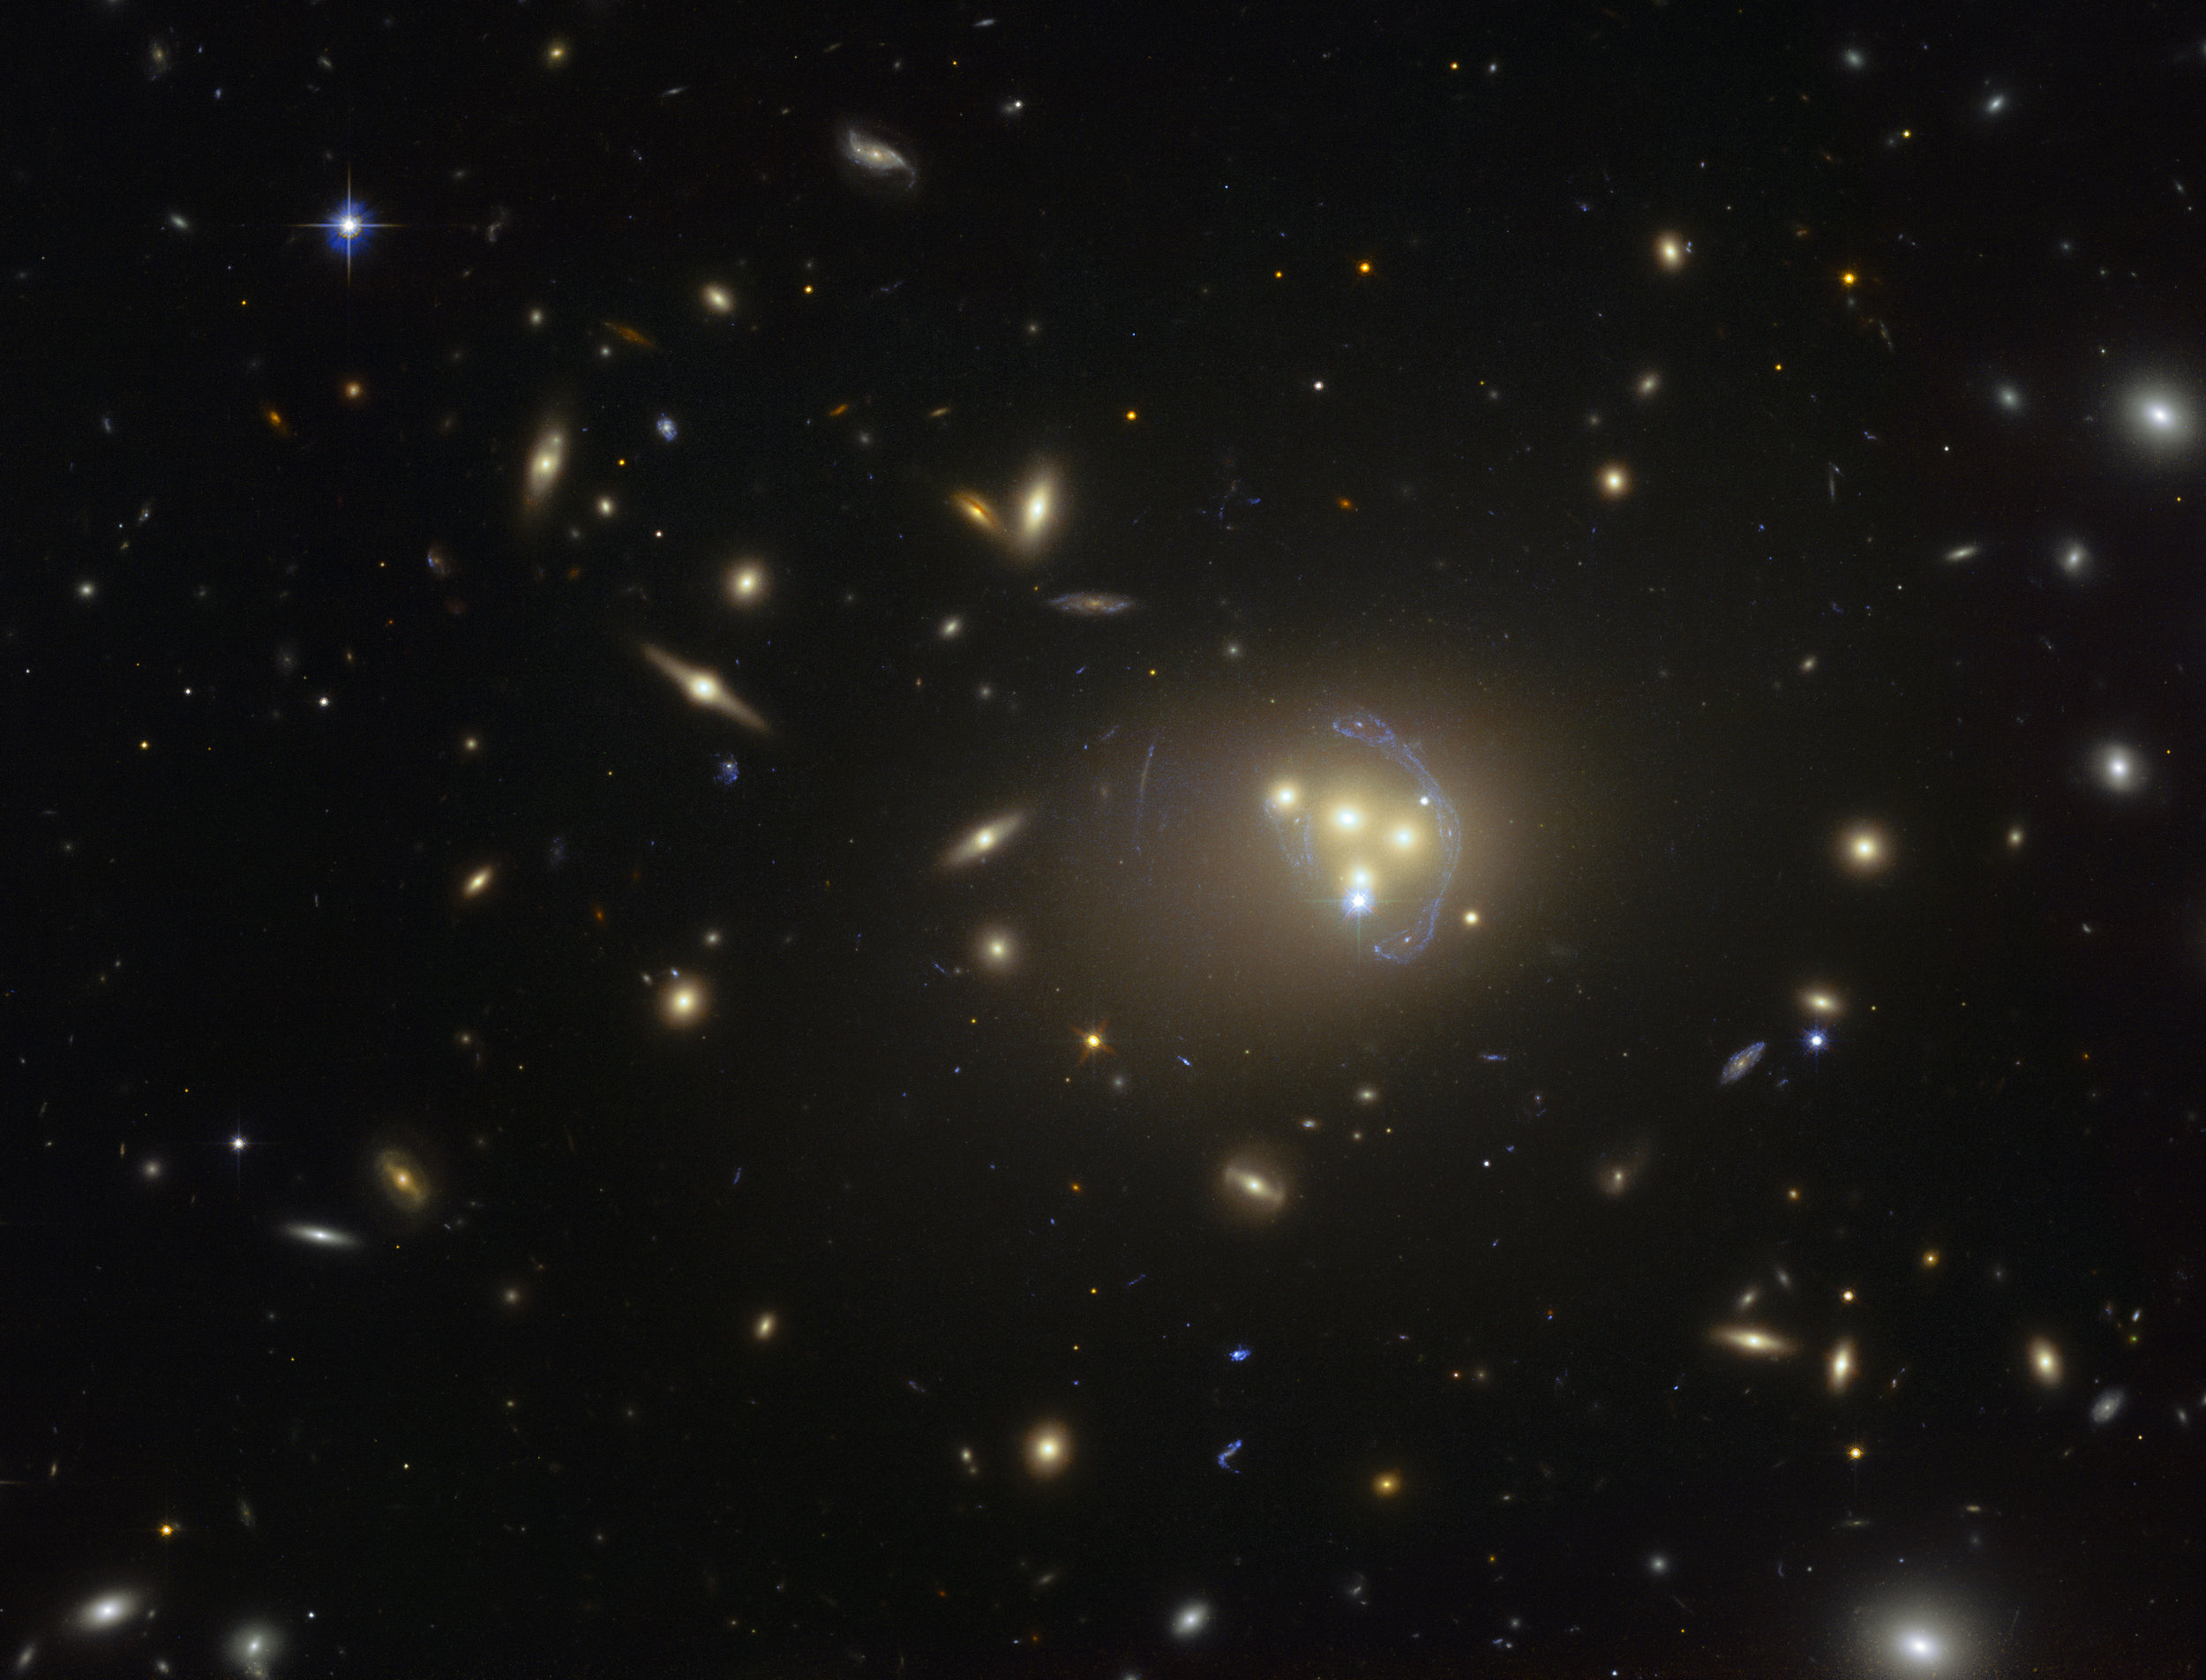 This image from the NASA/ESA Hubble Space Telescope shows the rich galaxy cluster Abell 3827. The strange blue structures surrounding the central galaxies are gravitationally lensed views of a much more distant galaxy behind the cluster. Observations of the central four merging galaxies have provided hints that the dark matter around one of the galaxies is not moving with the galaxy itself, possibly implying dark matter-dark matter interactions of an unknown nature are occuring. Image credit: ESO